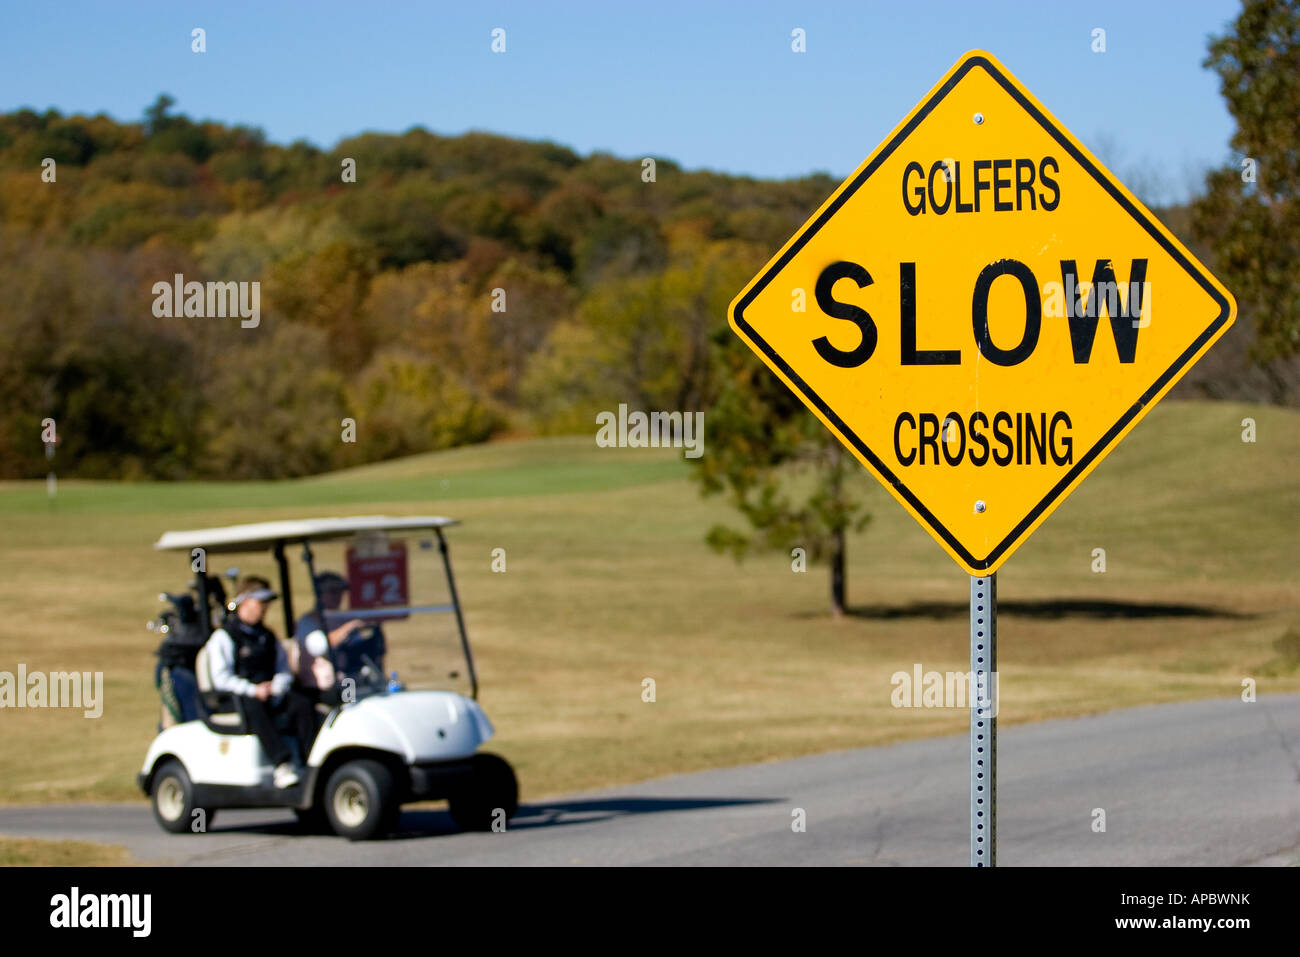 Golfers make their way on a path in their golf cart at Country Club Golf Course in Bella Vista, Ark. Stock Photo